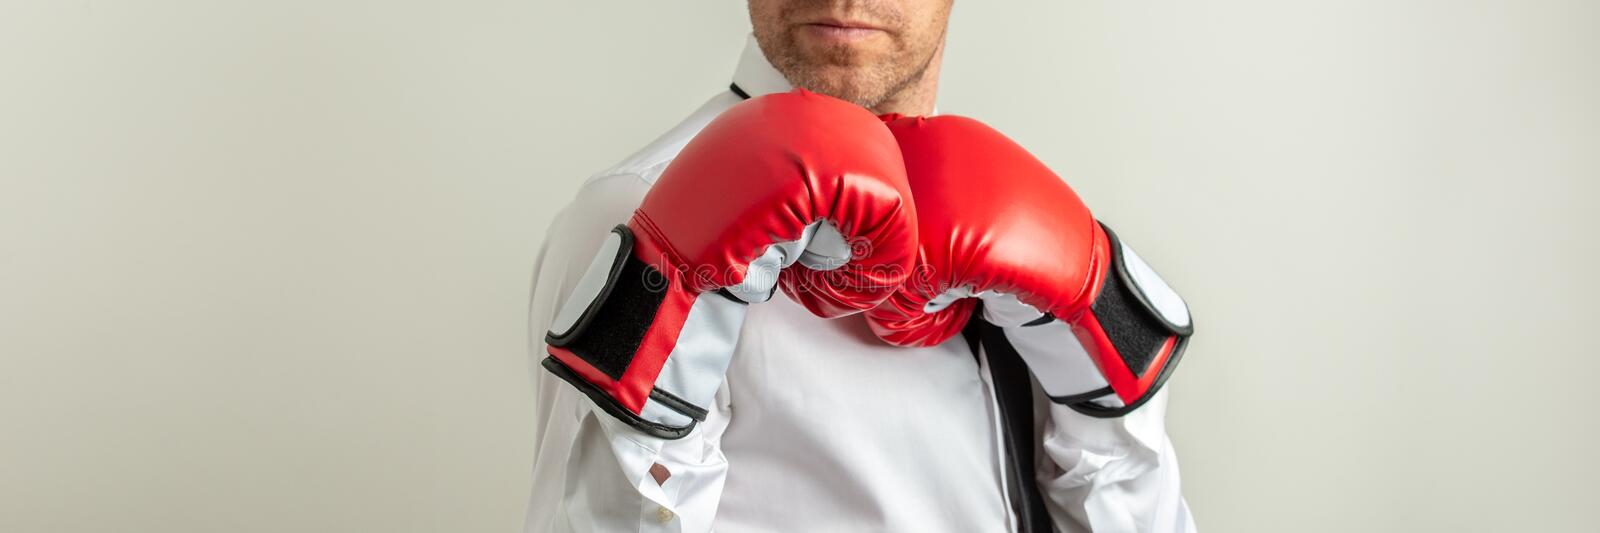 Businessman wearing red boxing gloves in a defensive position stock photo